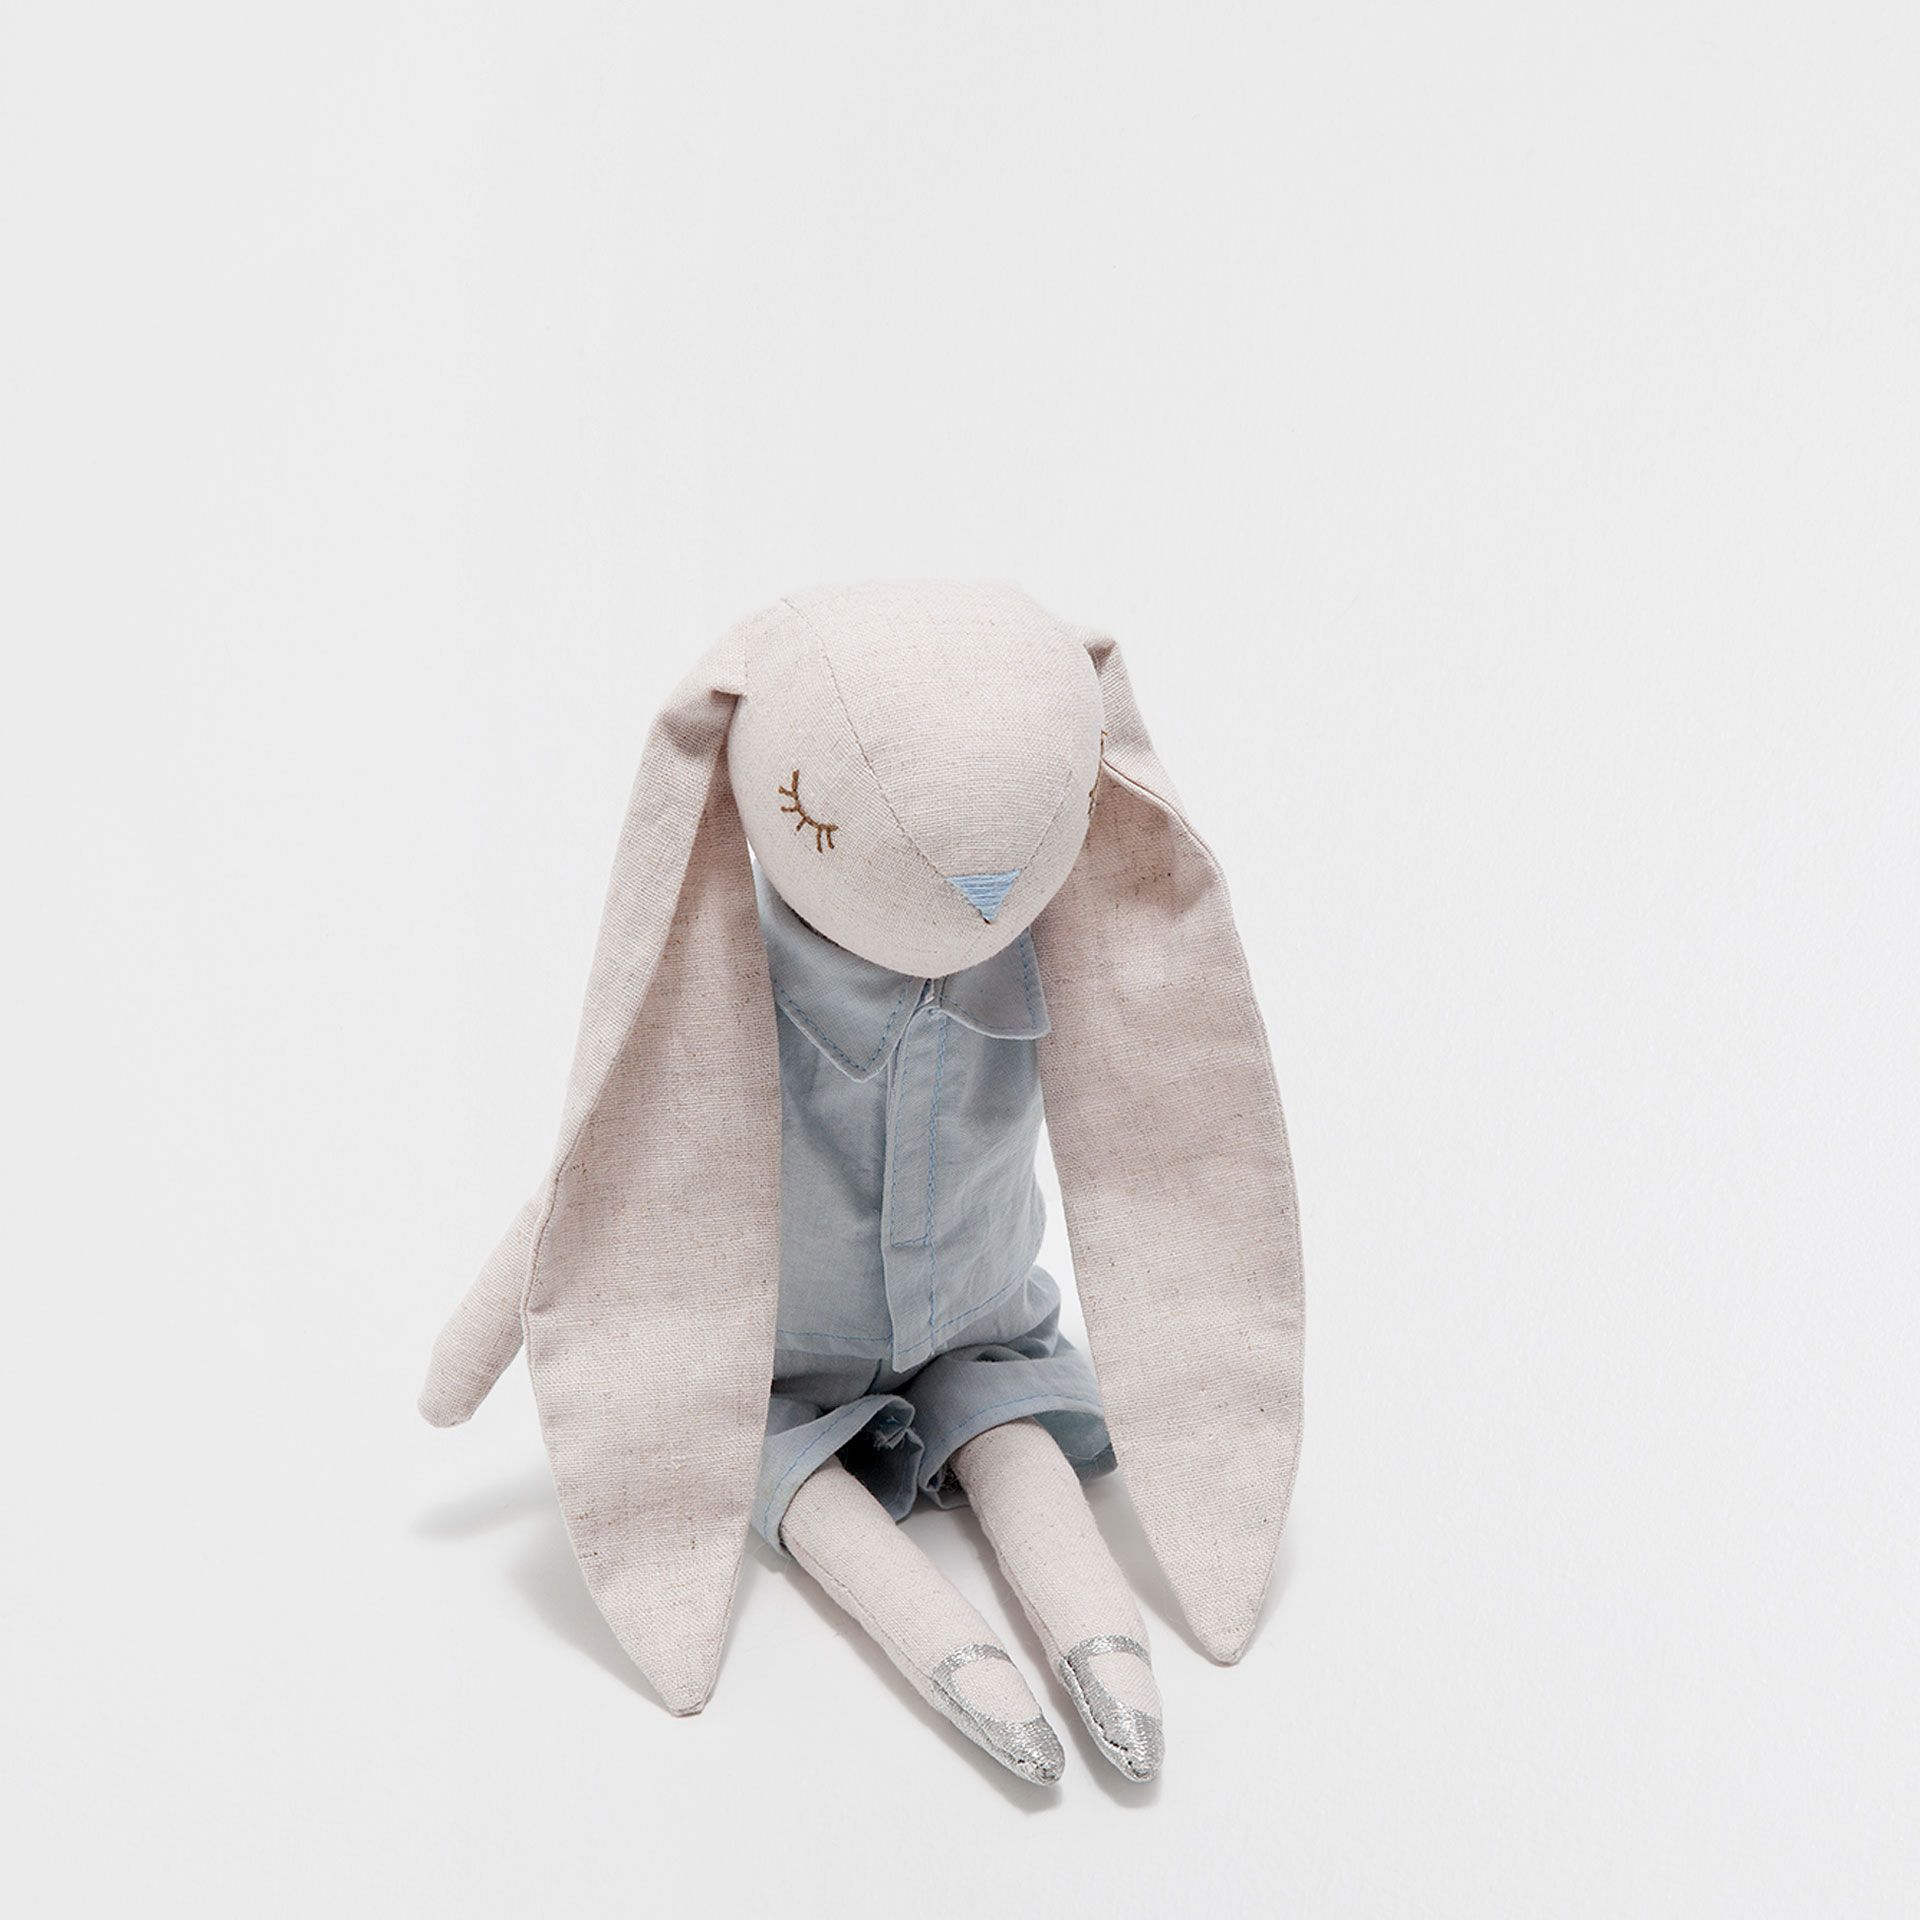 BUNNY SOFT TOY WITH LONG EARS  New Arrivals  Decoration  Zara